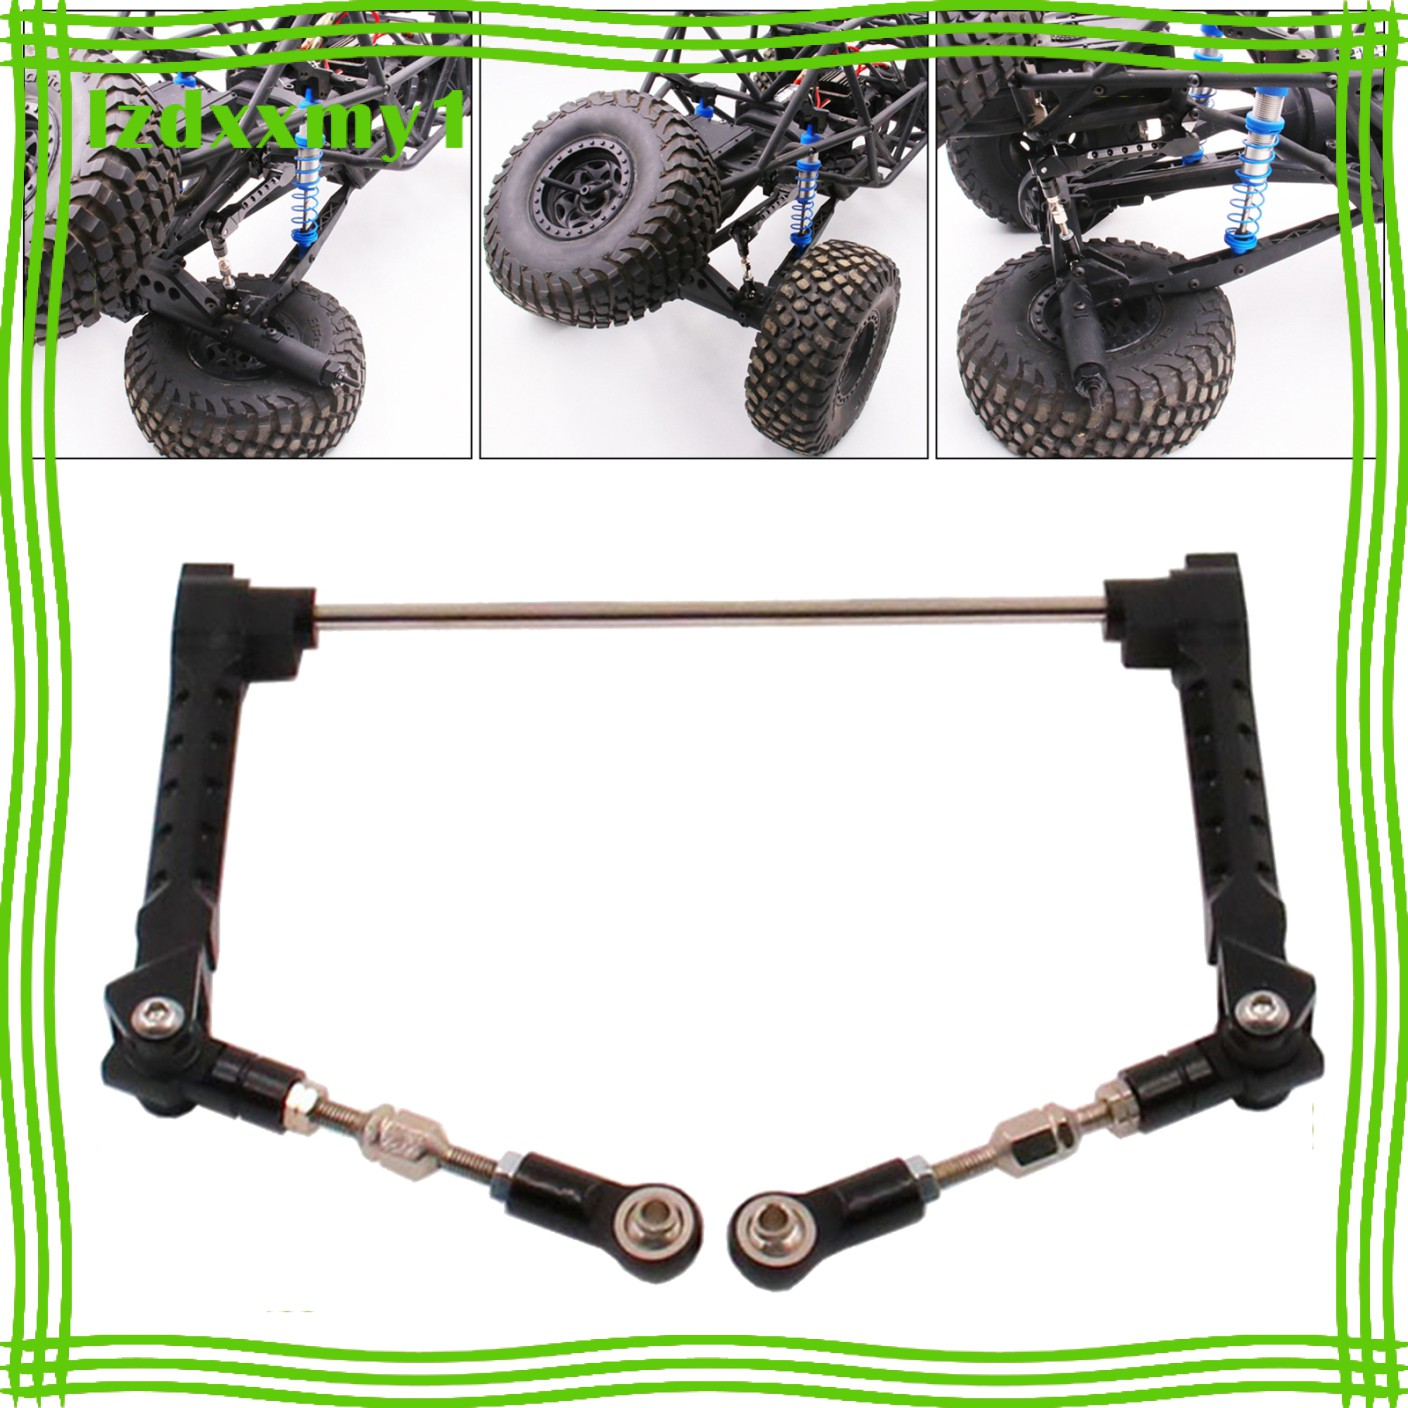 Swaybar Anti-Roll Rod Stabilizer for Axial 1/10th RC Model Vehicle Parts